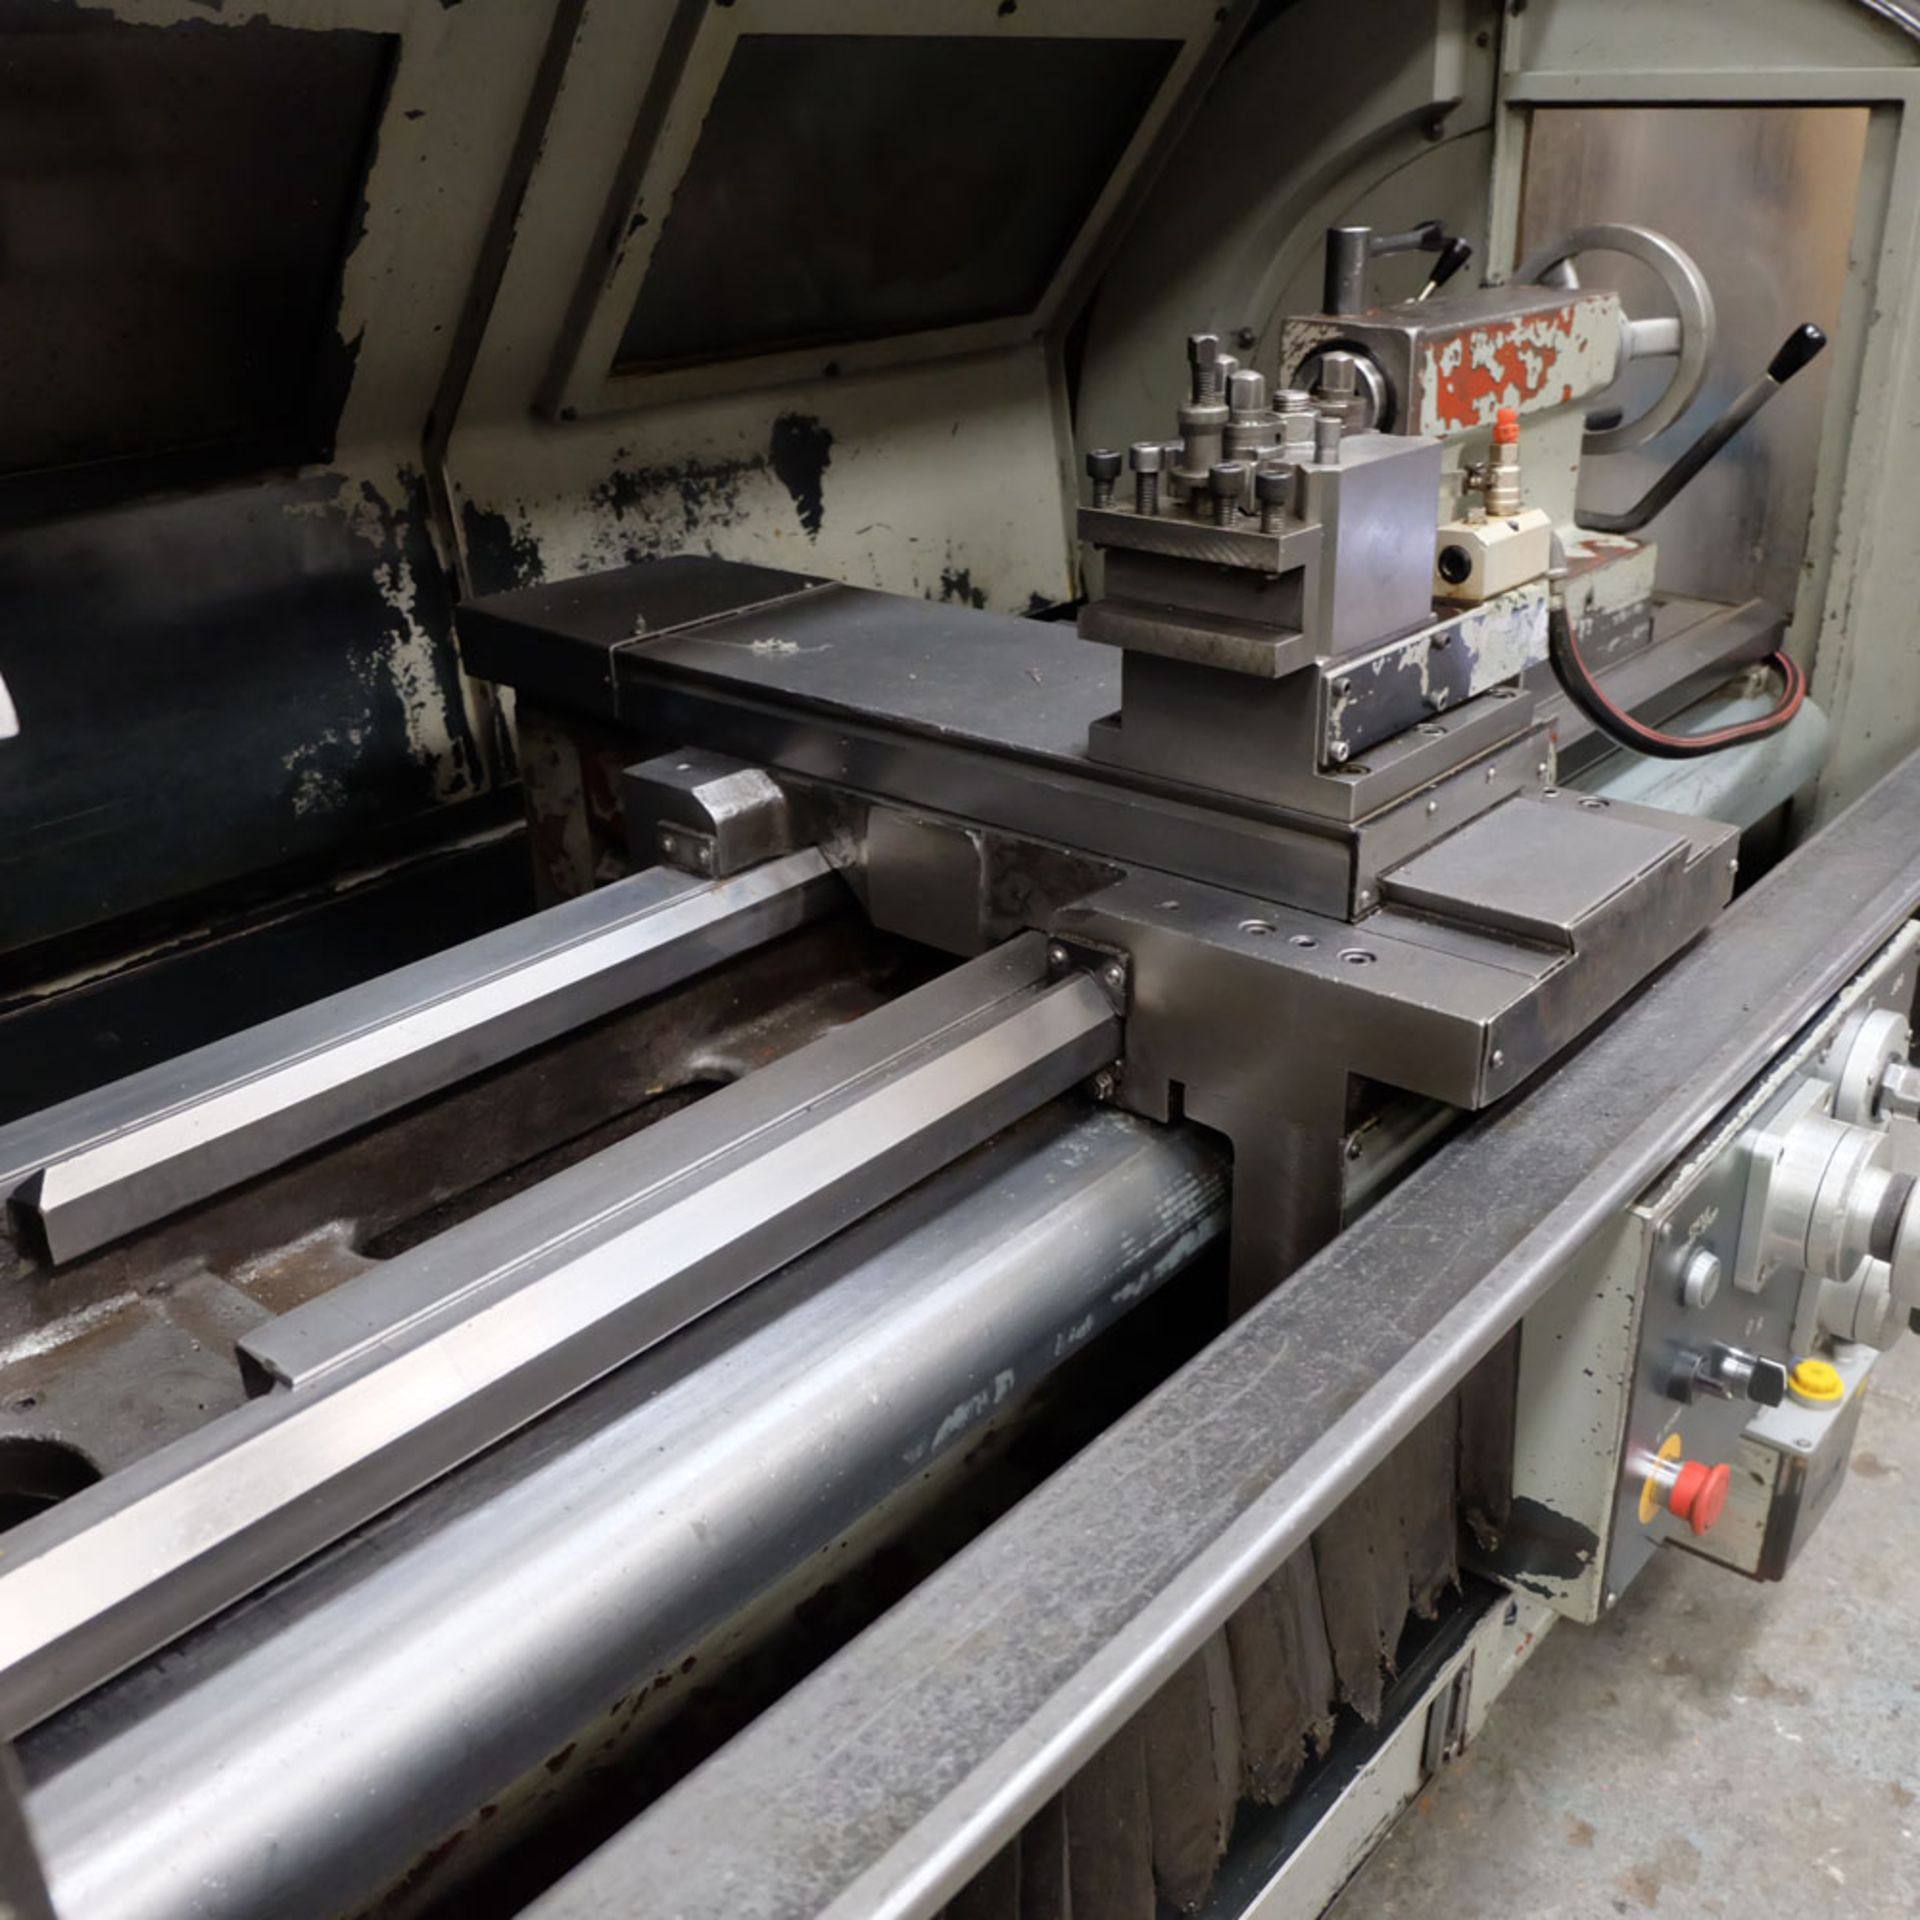 XYZ Proturn 420 Model L480 CNC Lathe with ProtoTrak LX3 Control.Swing Over Bed: 480mm. - Image 2 of 6